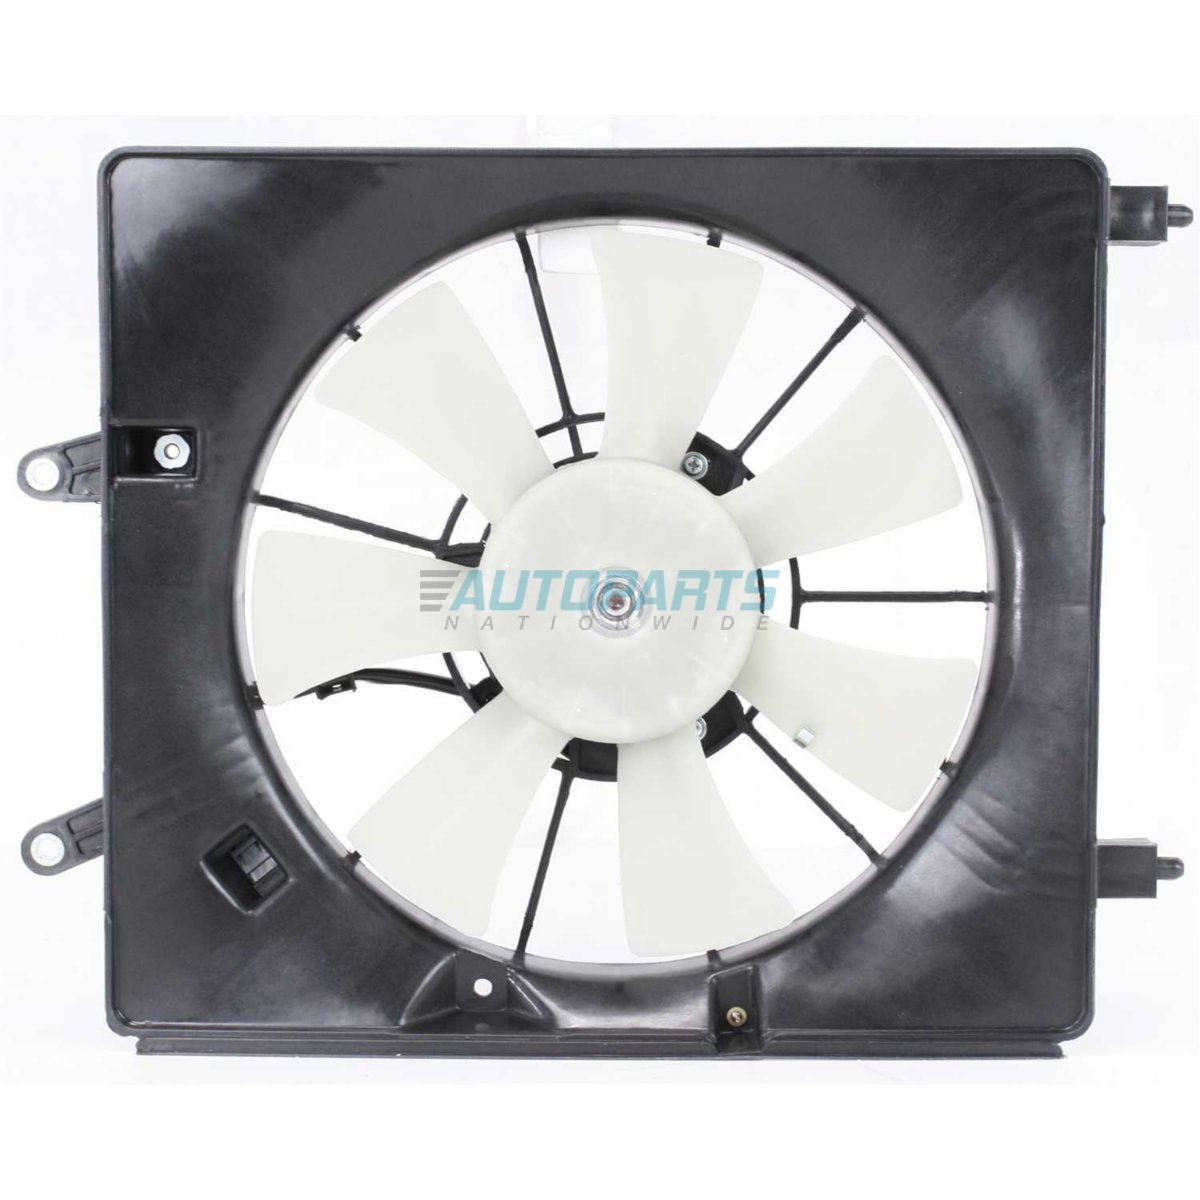 NEW 2004-2008 FITS ACURA TL A//C FAN SHROUD ASSEMBLY FOR AC3113107 38615RDAA00